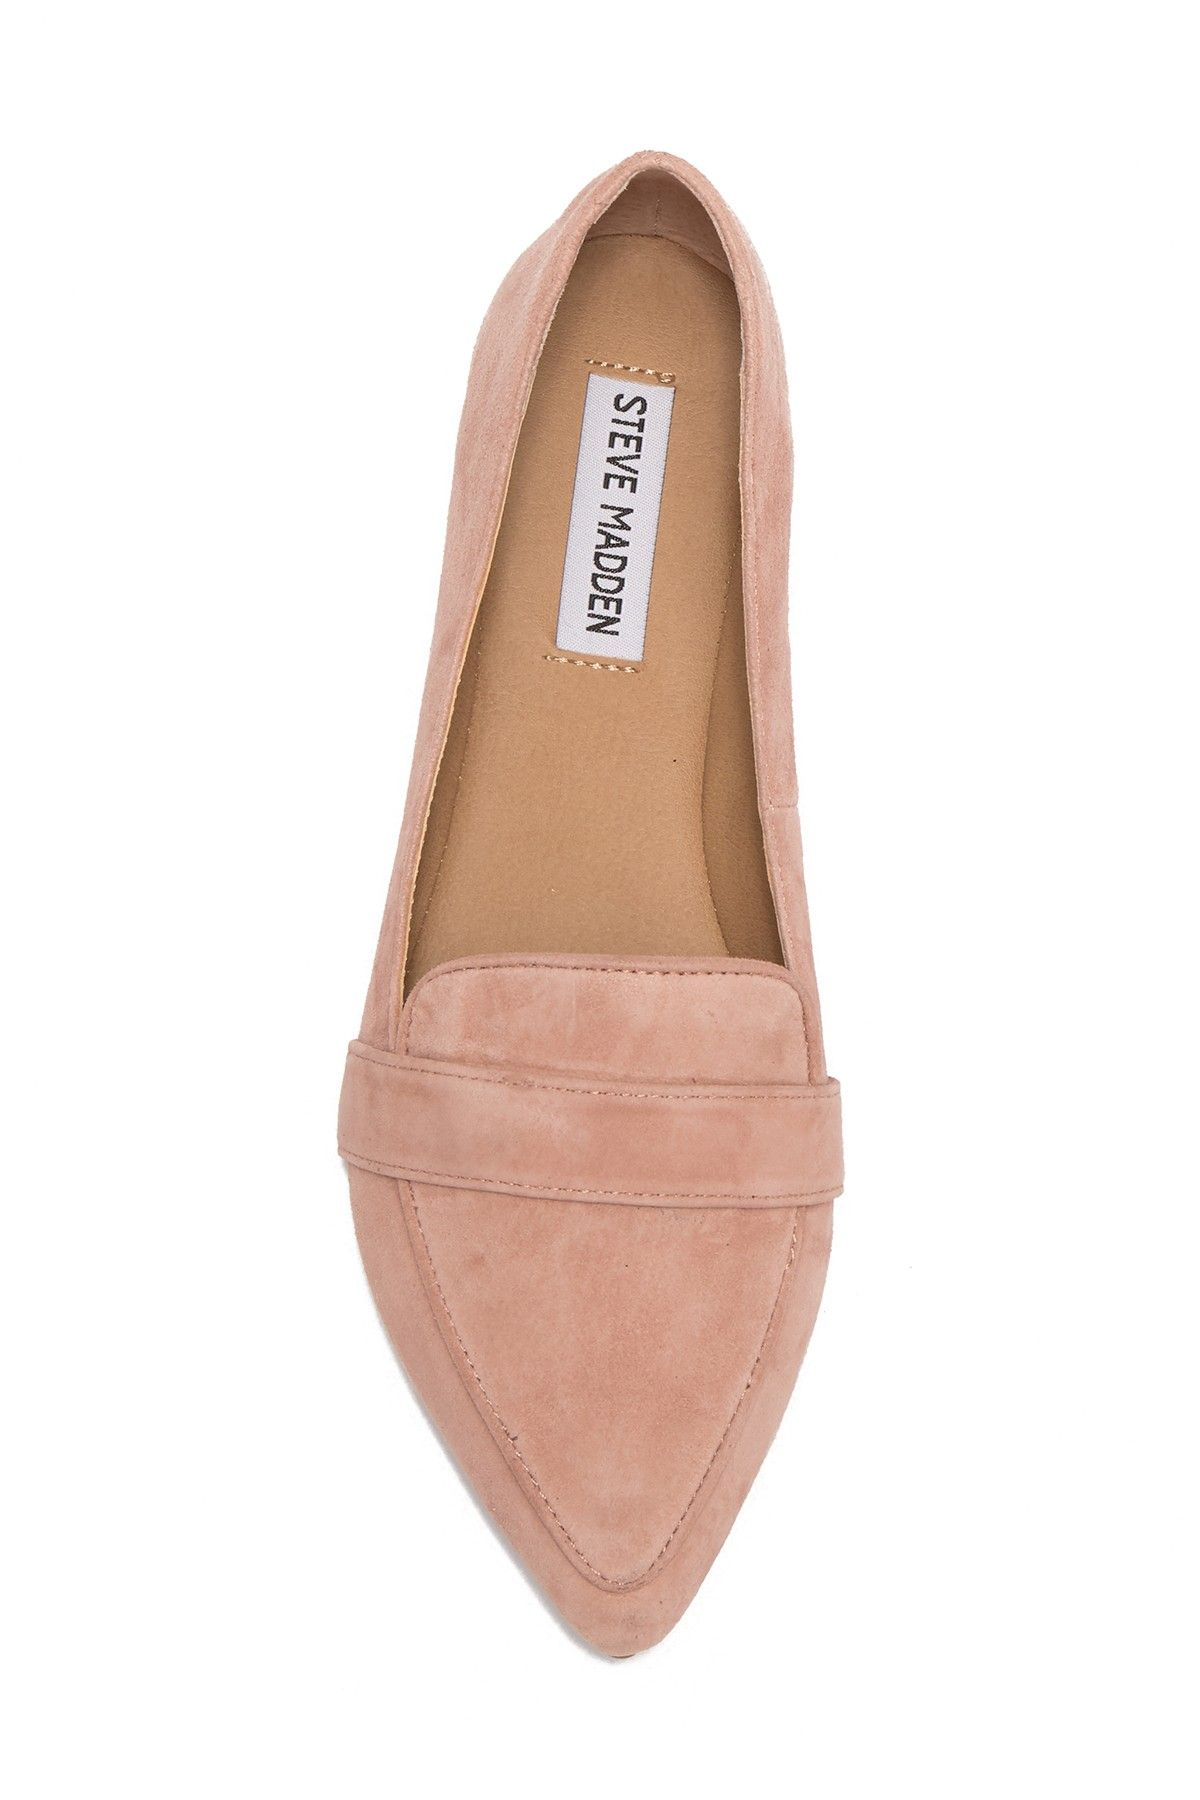 1503874bda6a Image of Steve Madden Jainna Penny Loafer Loafers For Women Outfit